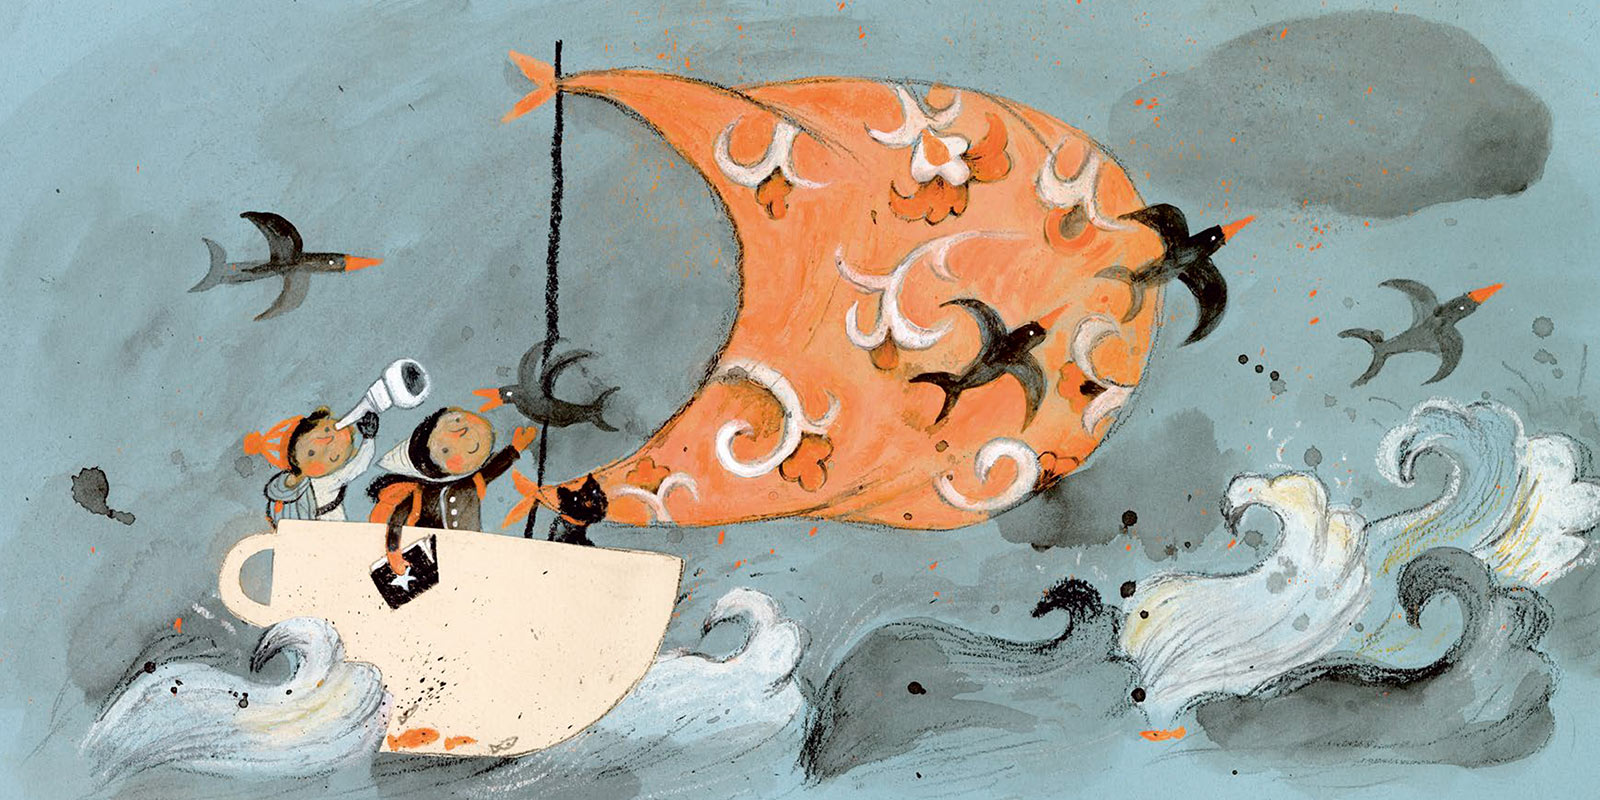 Illustration from Kyo Maclear's Story Boat book